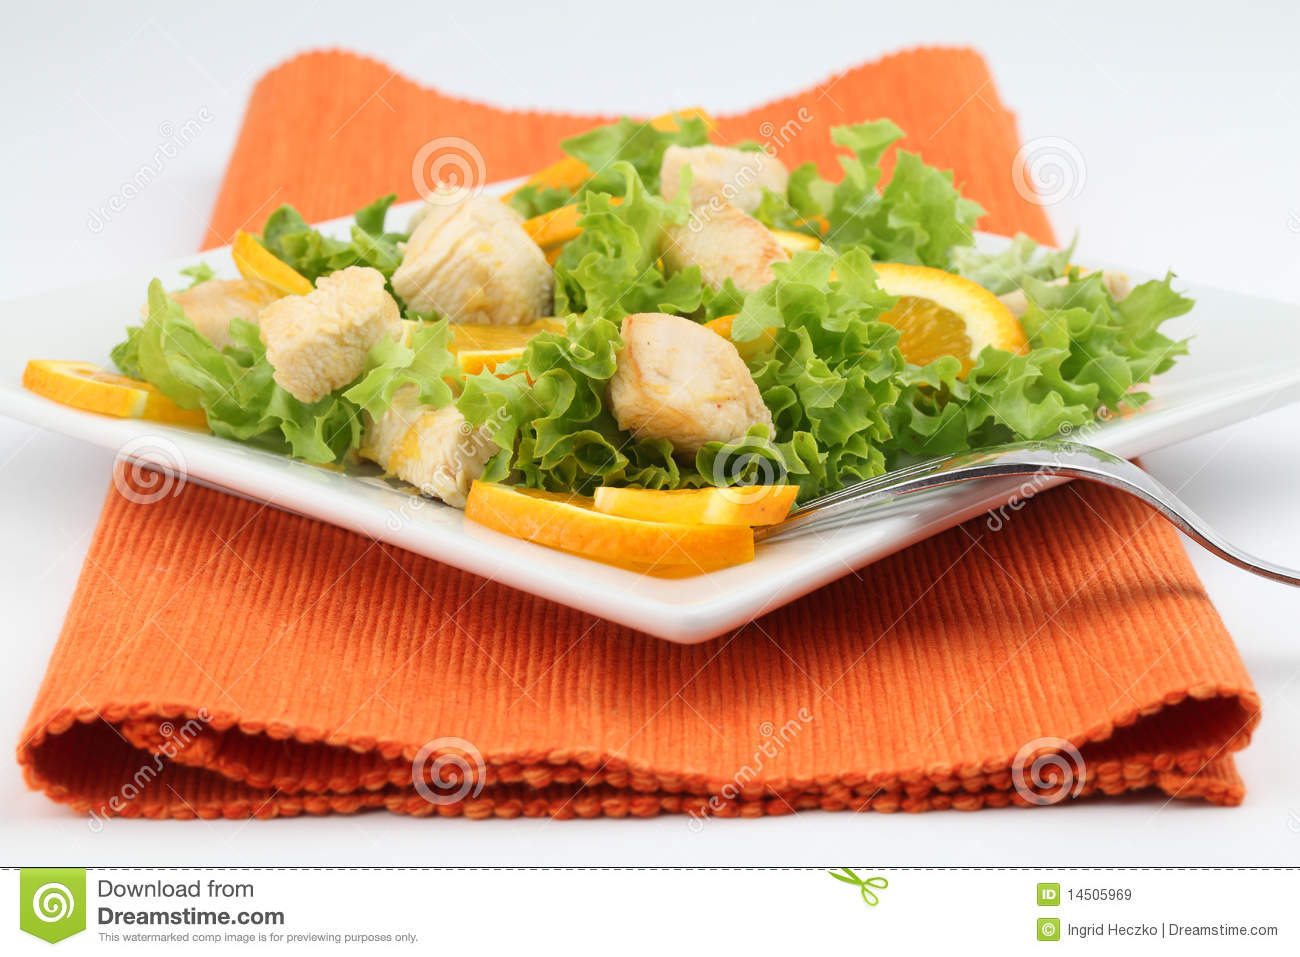 Royalty Free Stock Images: Chicken salad with oranges